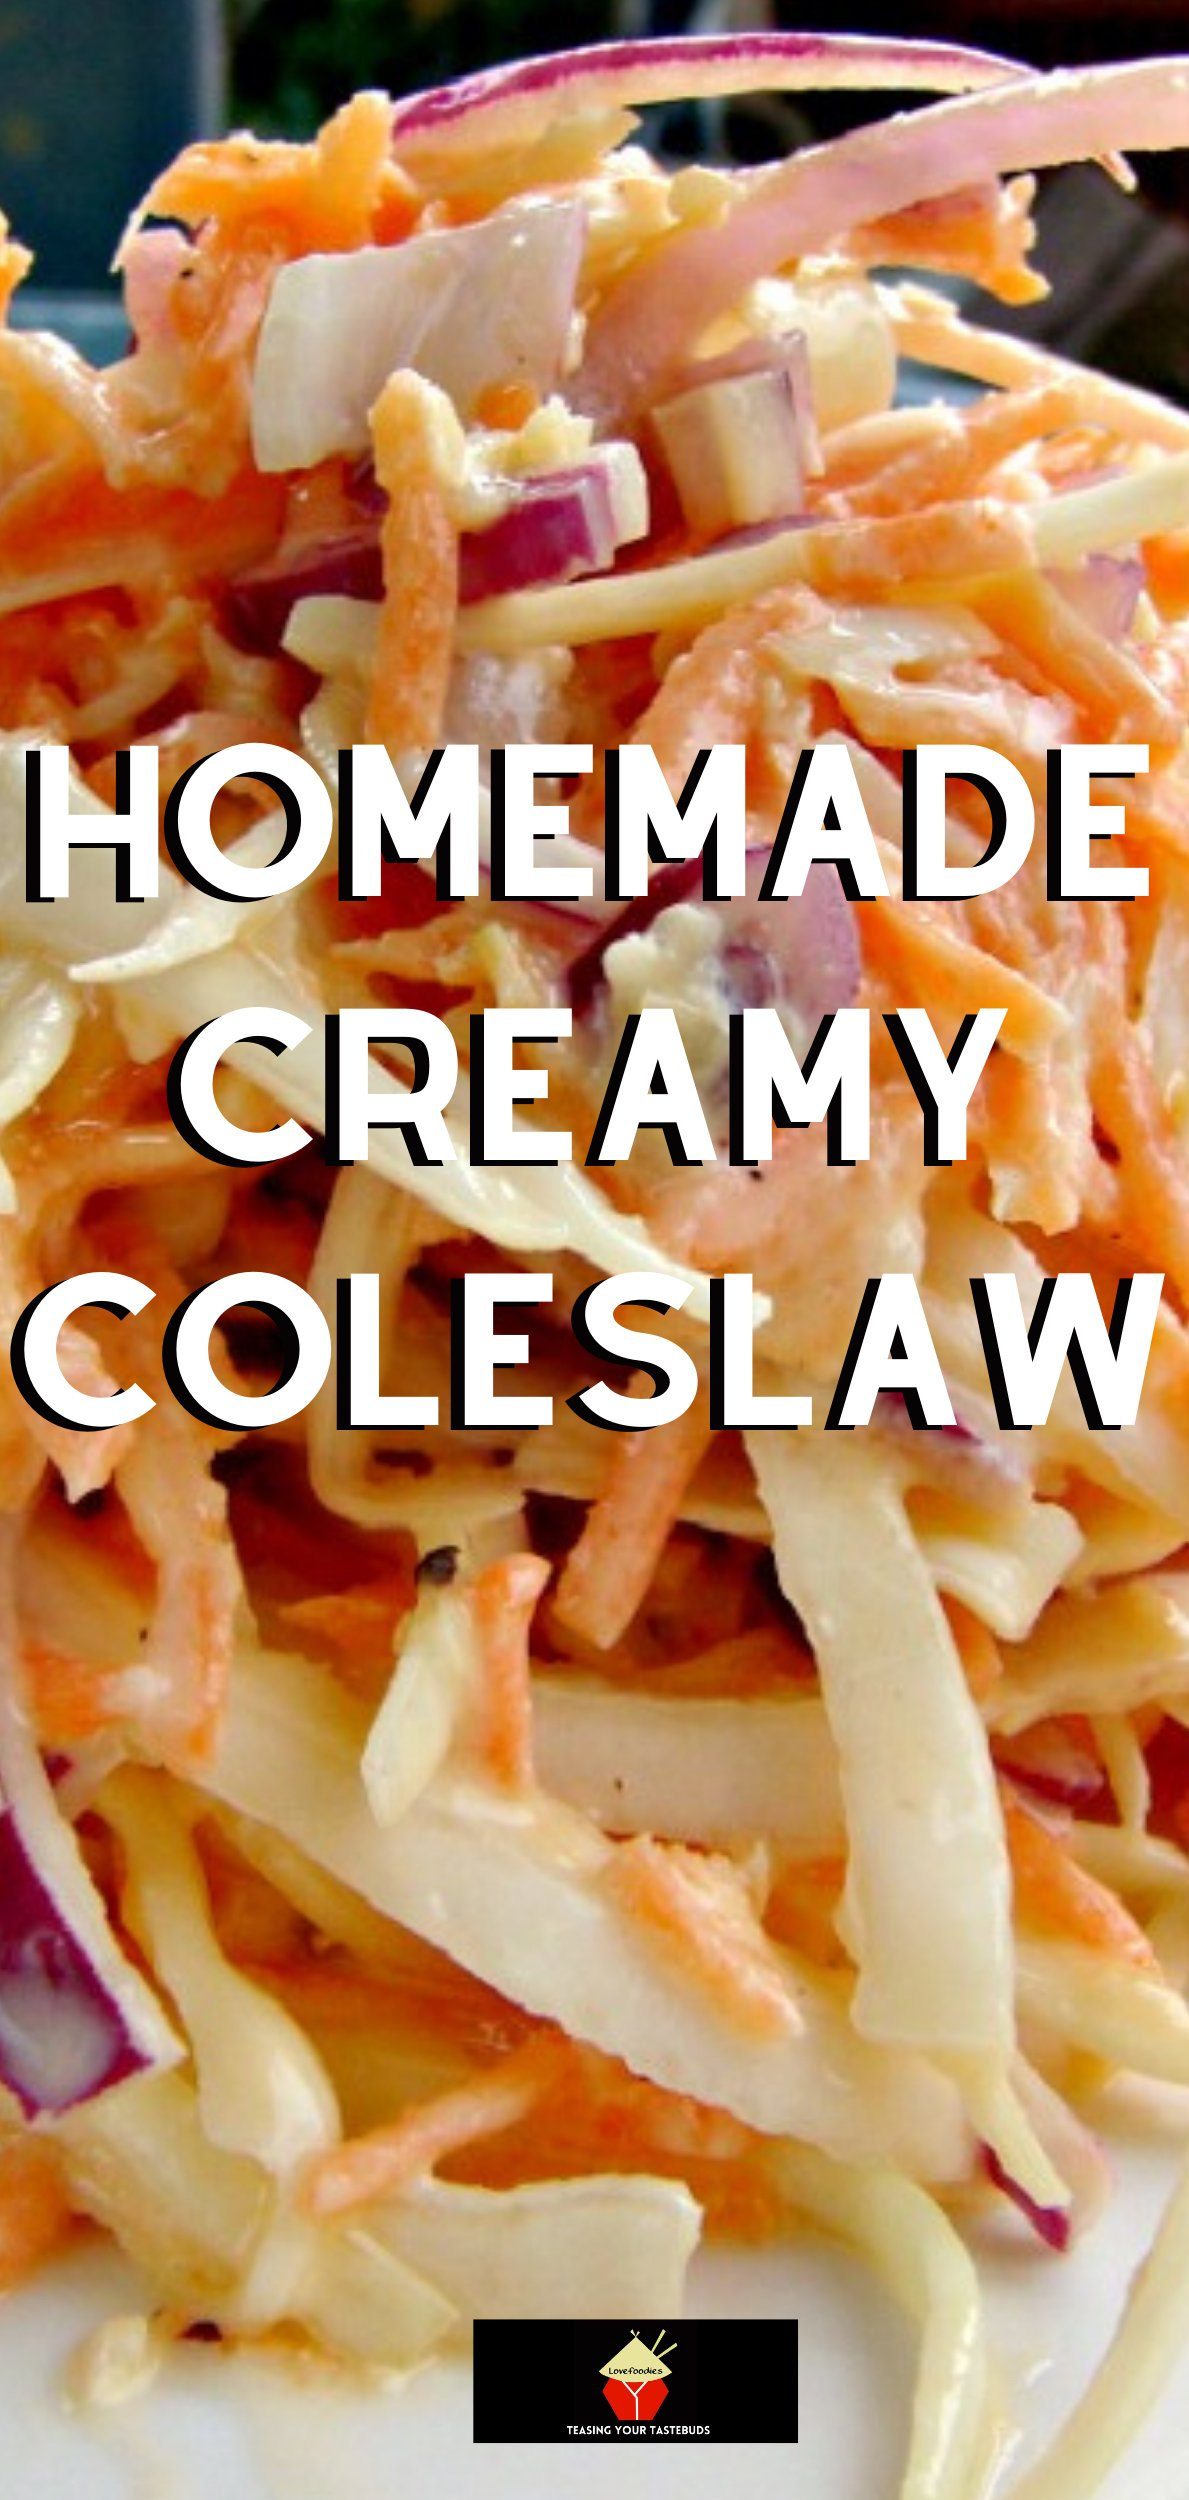 Homemade Creamy Coleslaw, a delicious low-fat salad option to a popular side dish, using fresh ingredients. Ideal for BBQ's, parties and burgers!